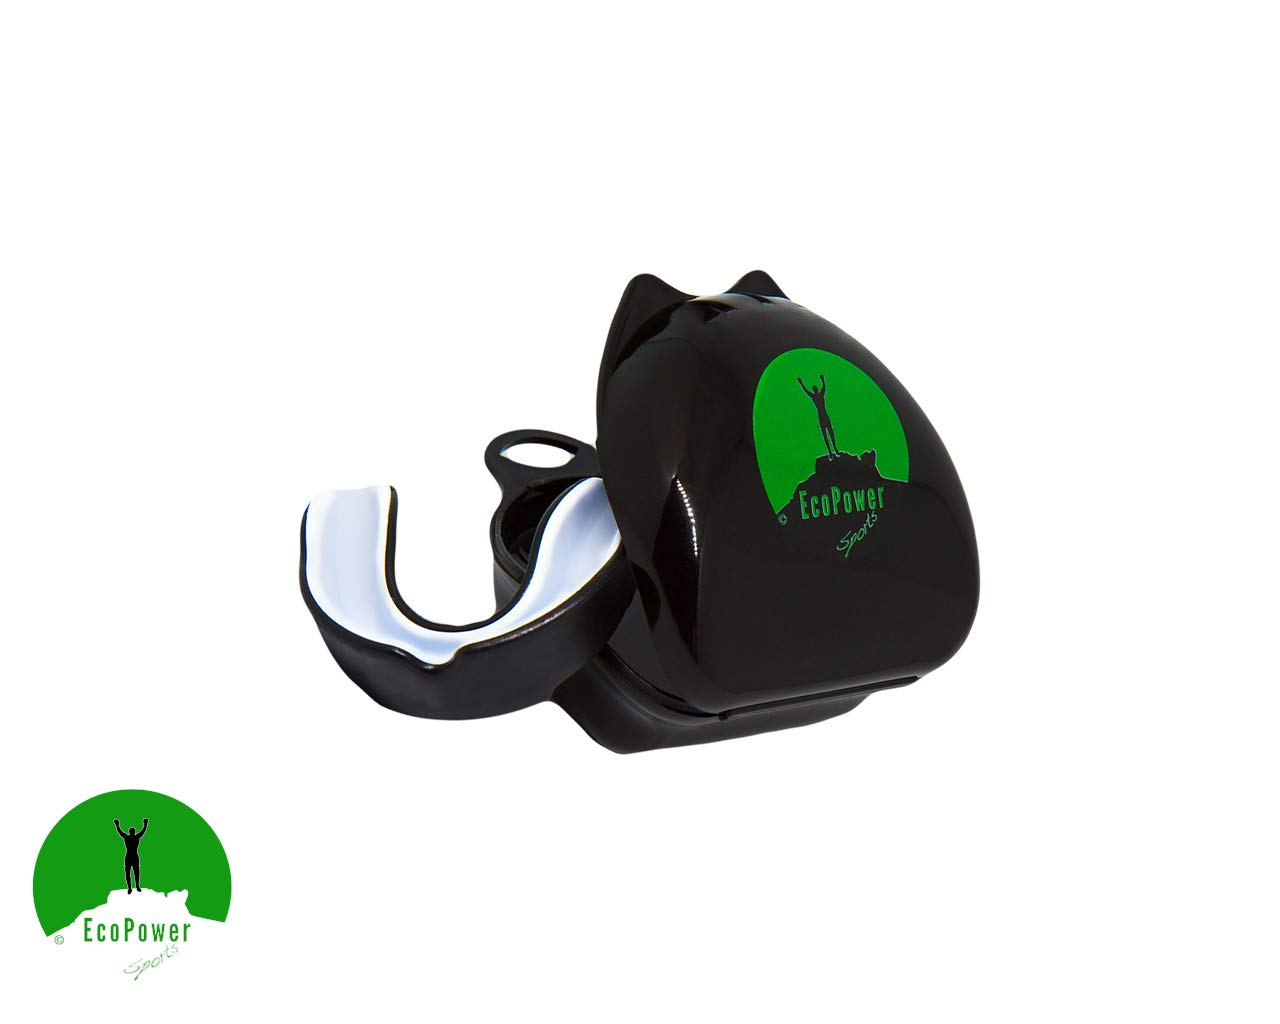 Lacrosse Judo- Mouldable /& Very Comfortable. Muay Thai EcoPower Sports Gumshield//Mouthguard For Any Contact Sport- including Boxing Karate Hockey Capoeira UFC Rugby